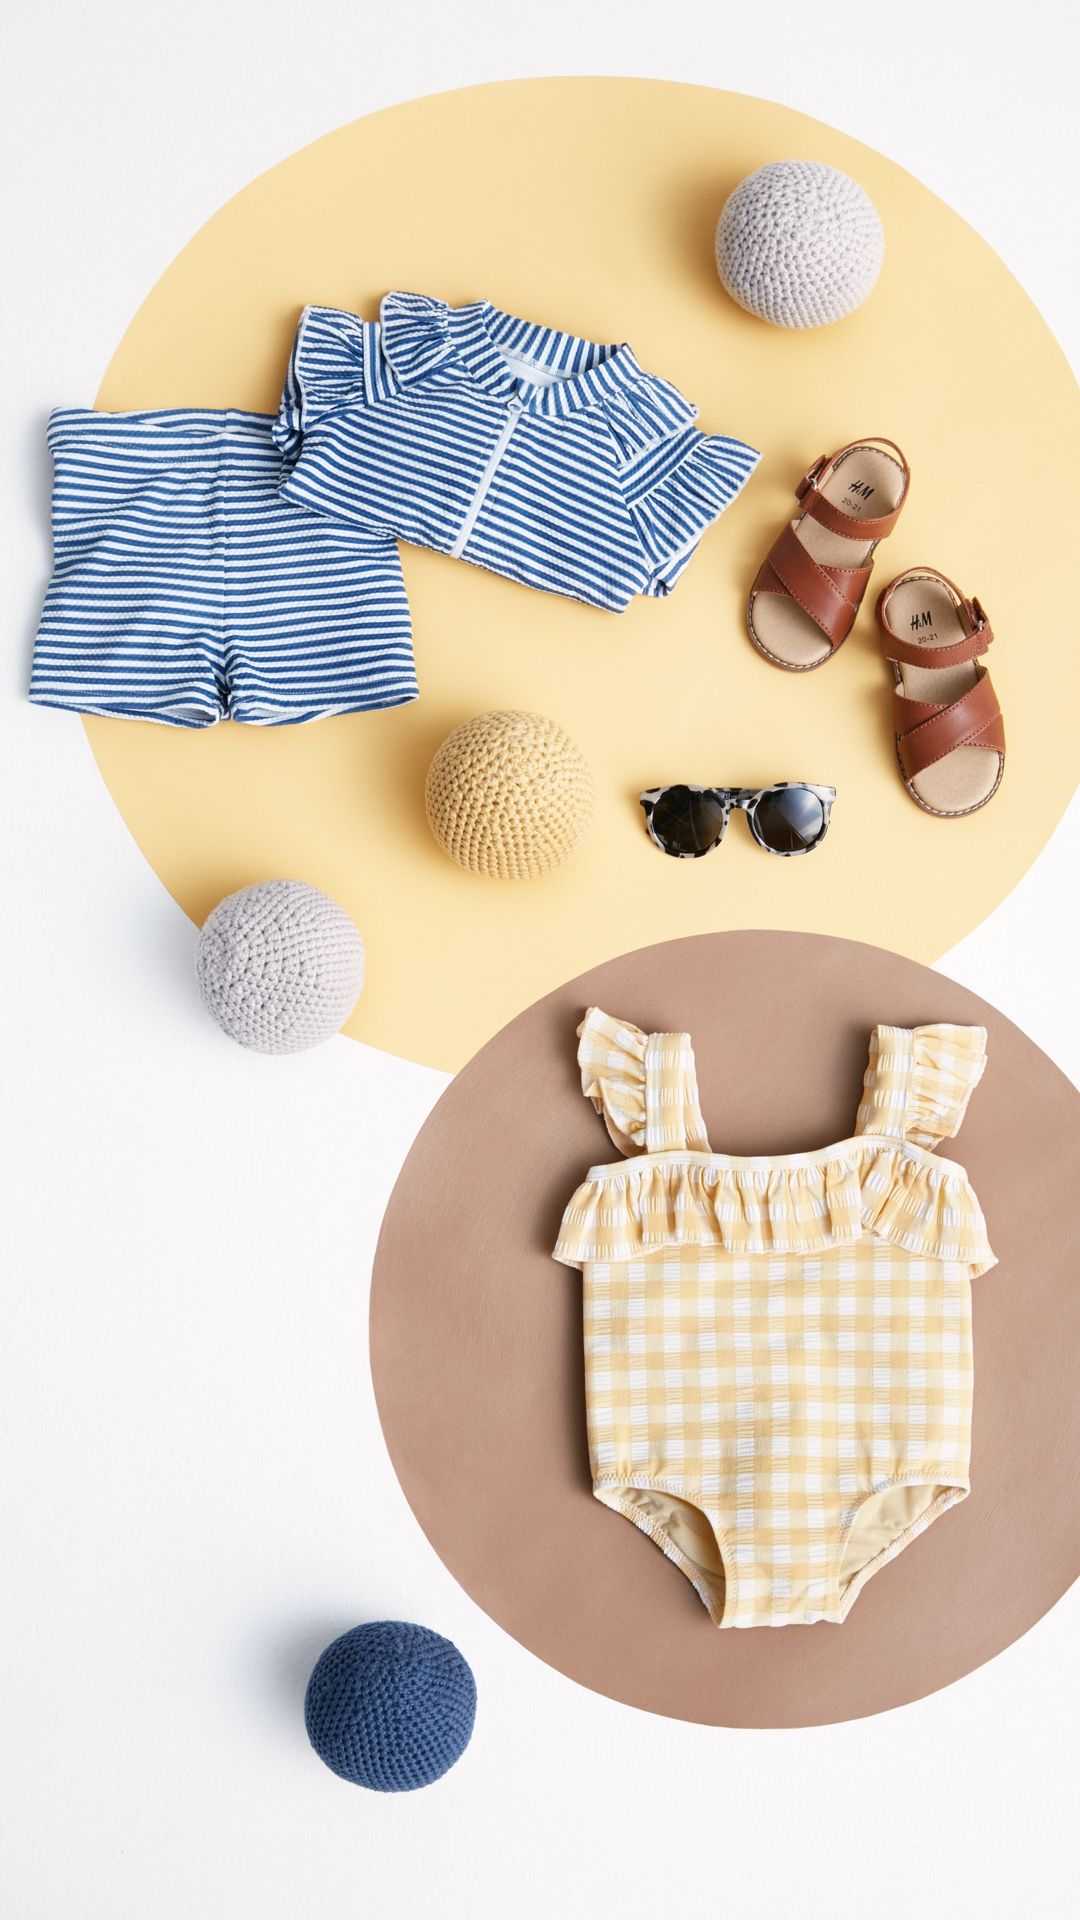 H&m Online Questionnaire Adorable Pieces In Soft Cotton And Airy Linen Made For